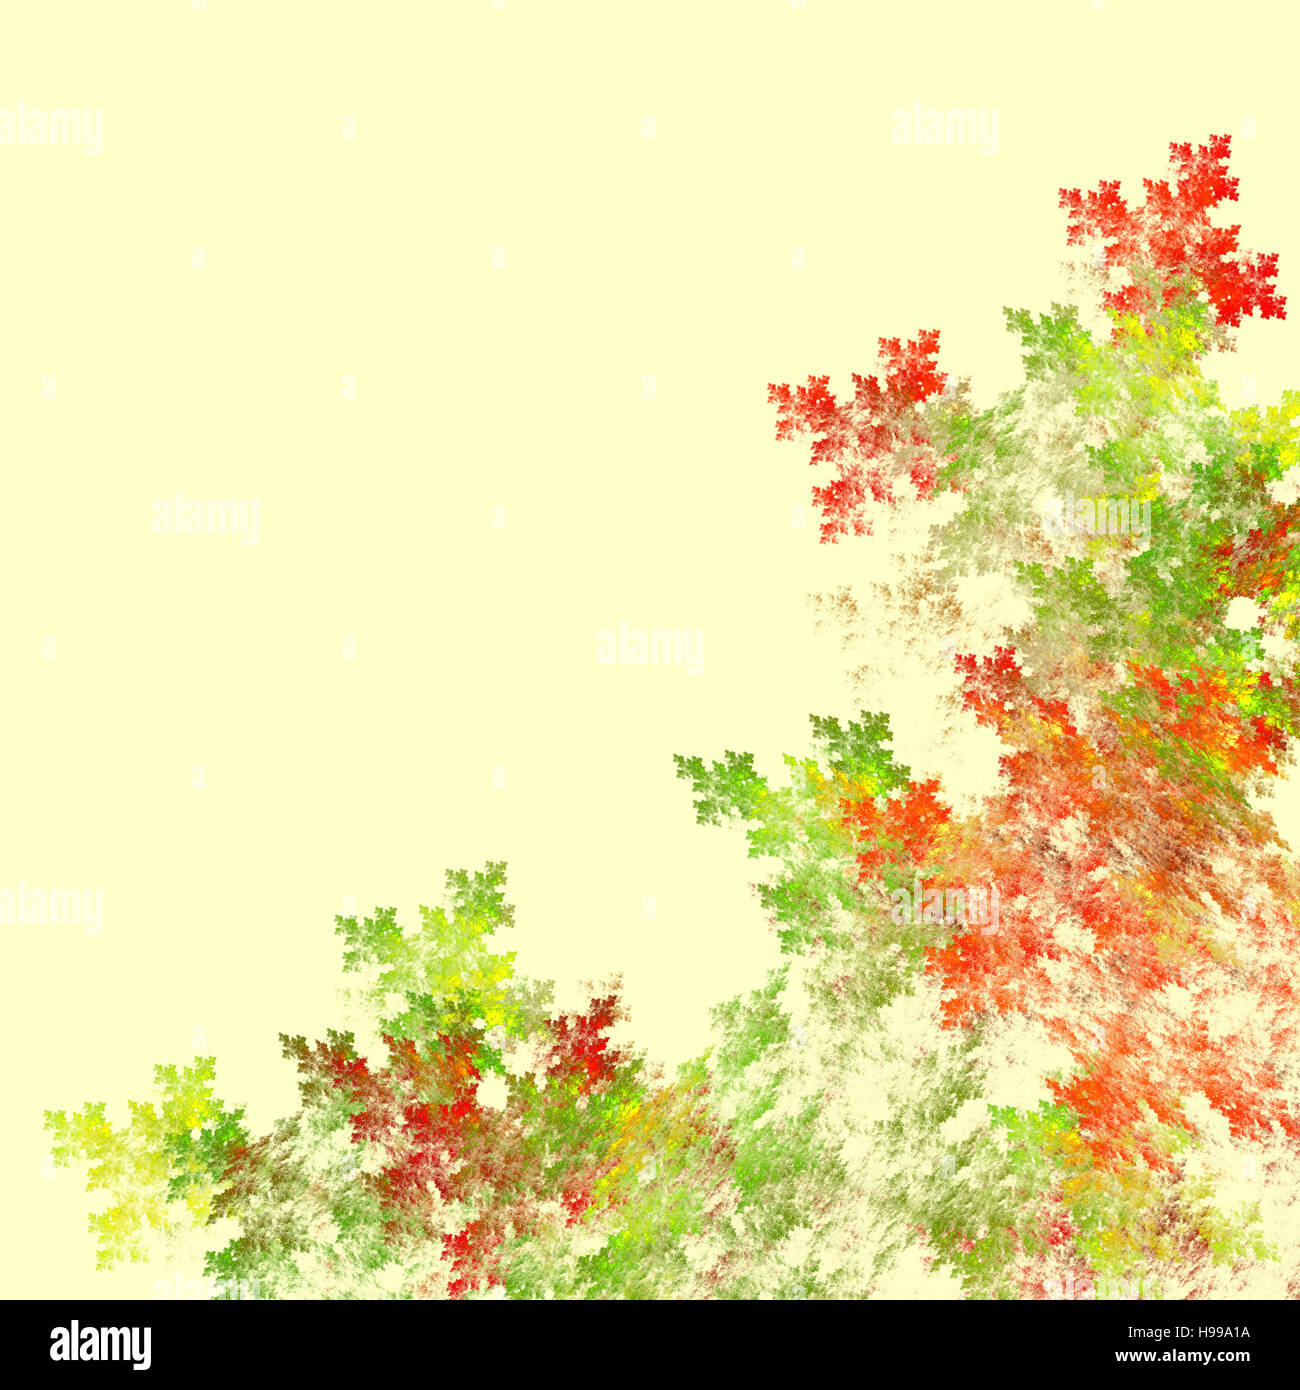 Abstract Fractal Background In Fall Colors Computer